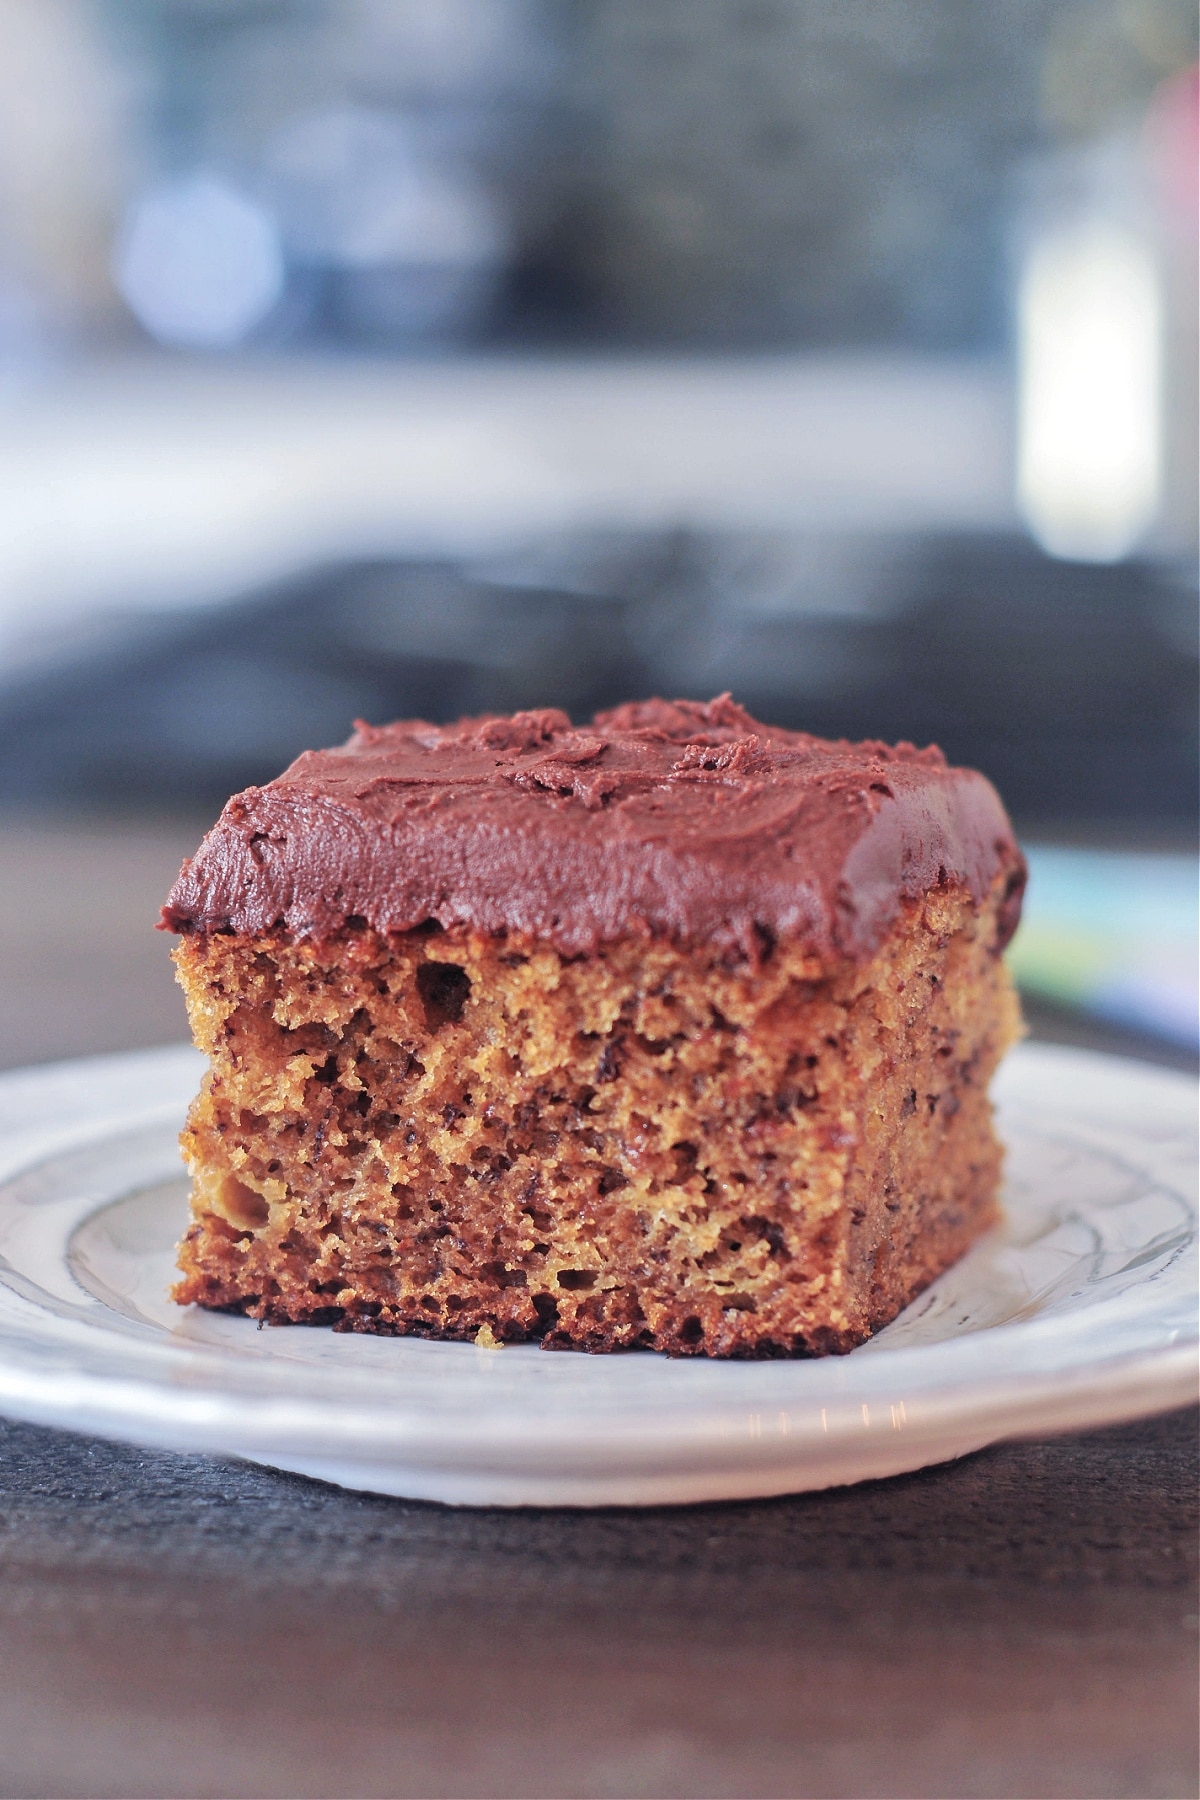 one square of banana snack cake with chocolate frosting on a small dessert plate against a blurred background.